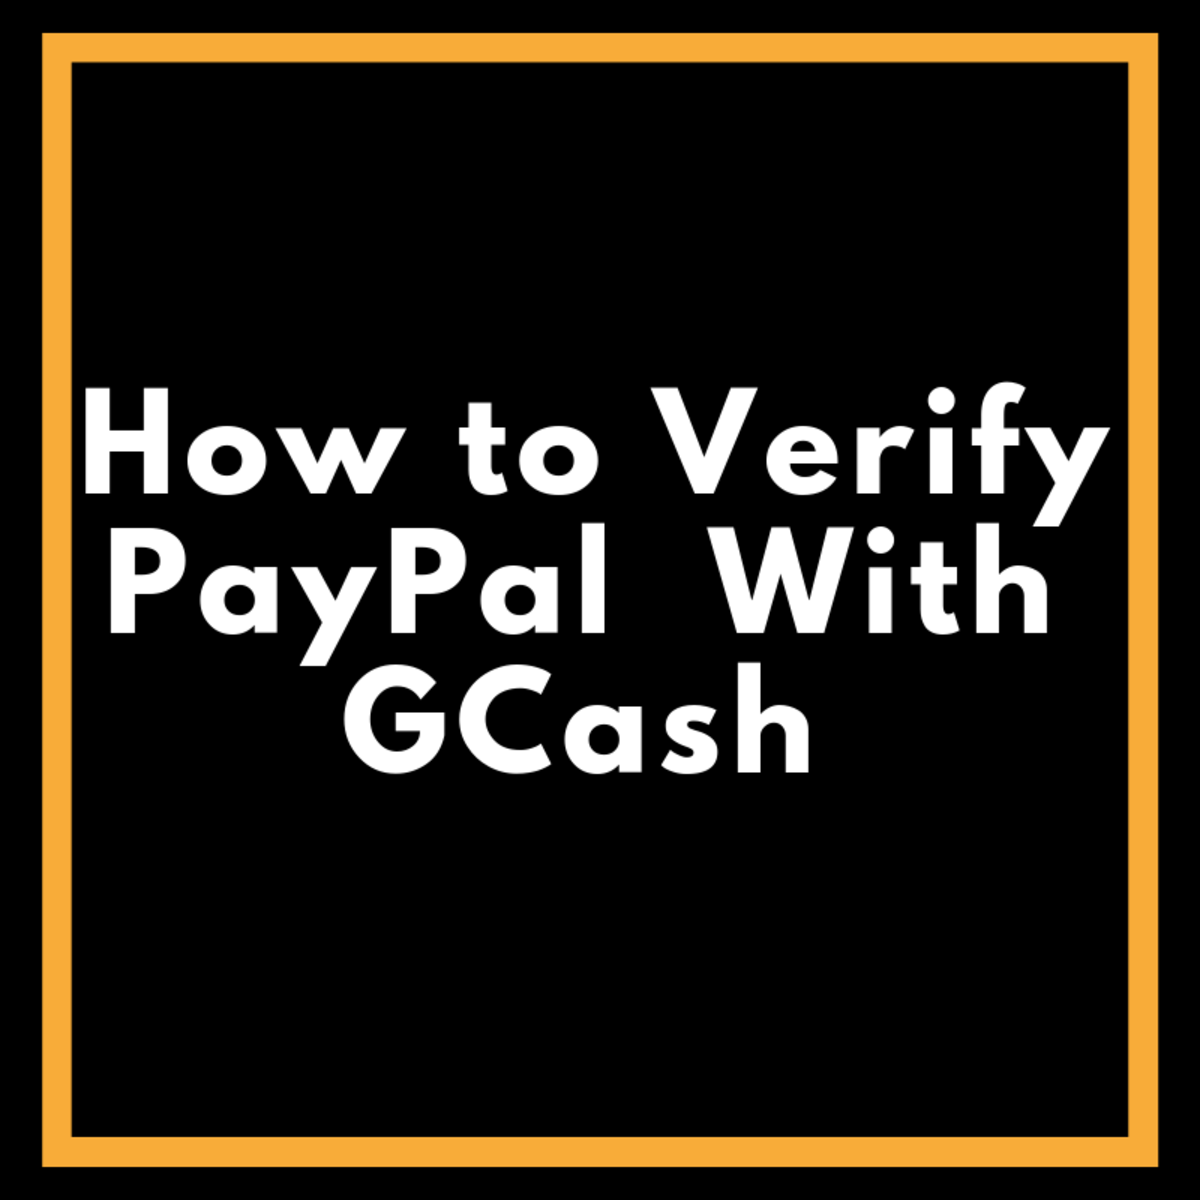 How to Verify Your PayPal Account Using a GCash Mastercard | ToughNickel